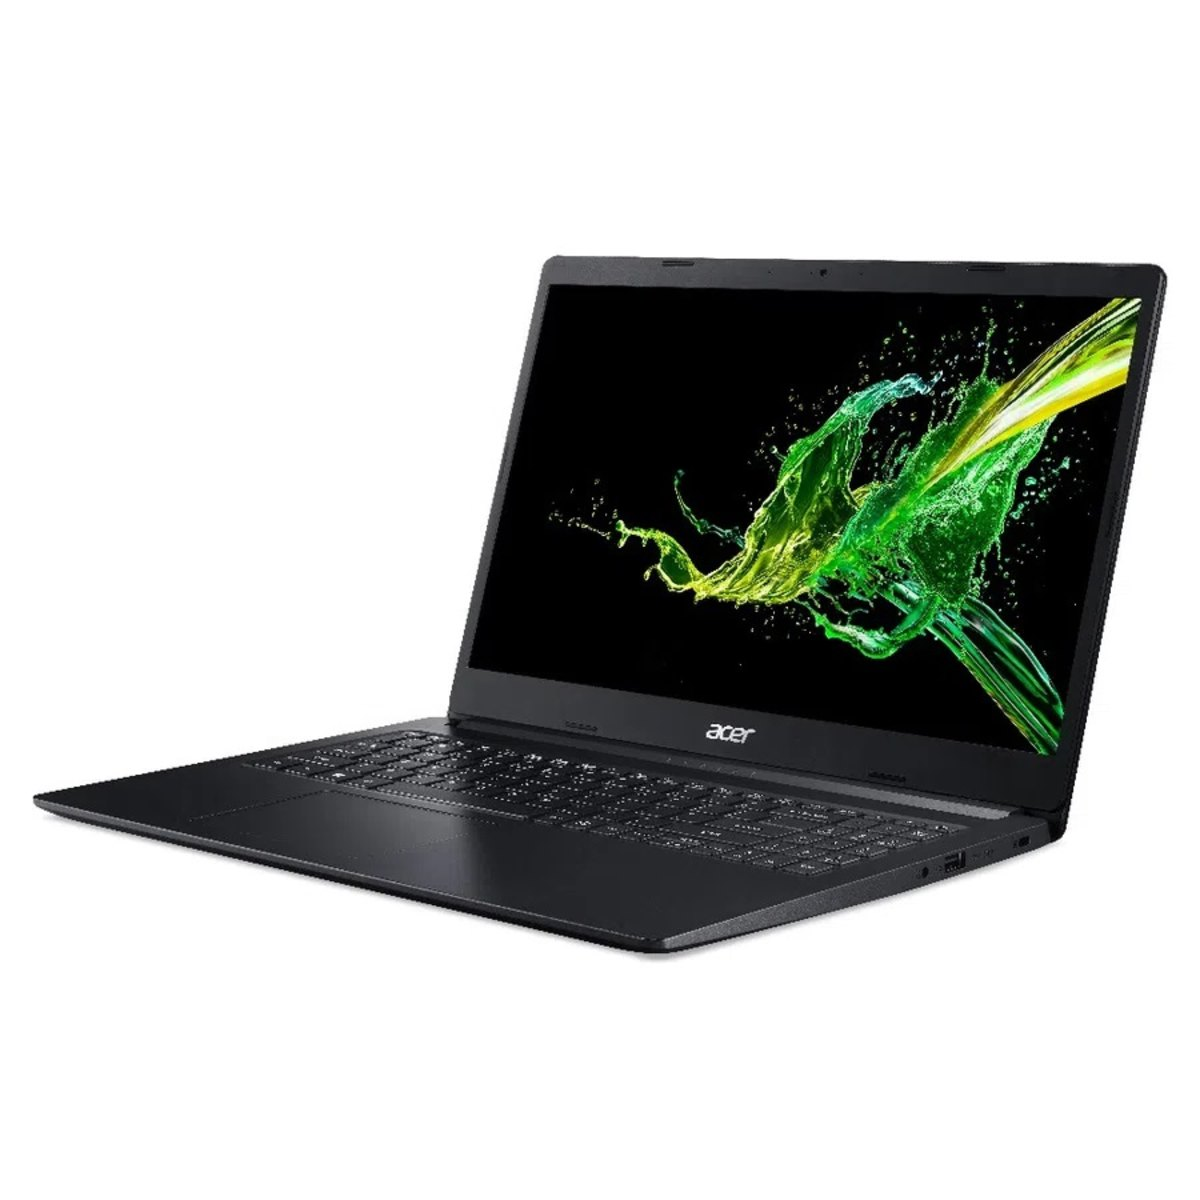 Notebook Acer A315 Intel Celeron N4000 Memoria 4gb Ssd 480gb Tela 15.6' Hd Windows 10 Pro